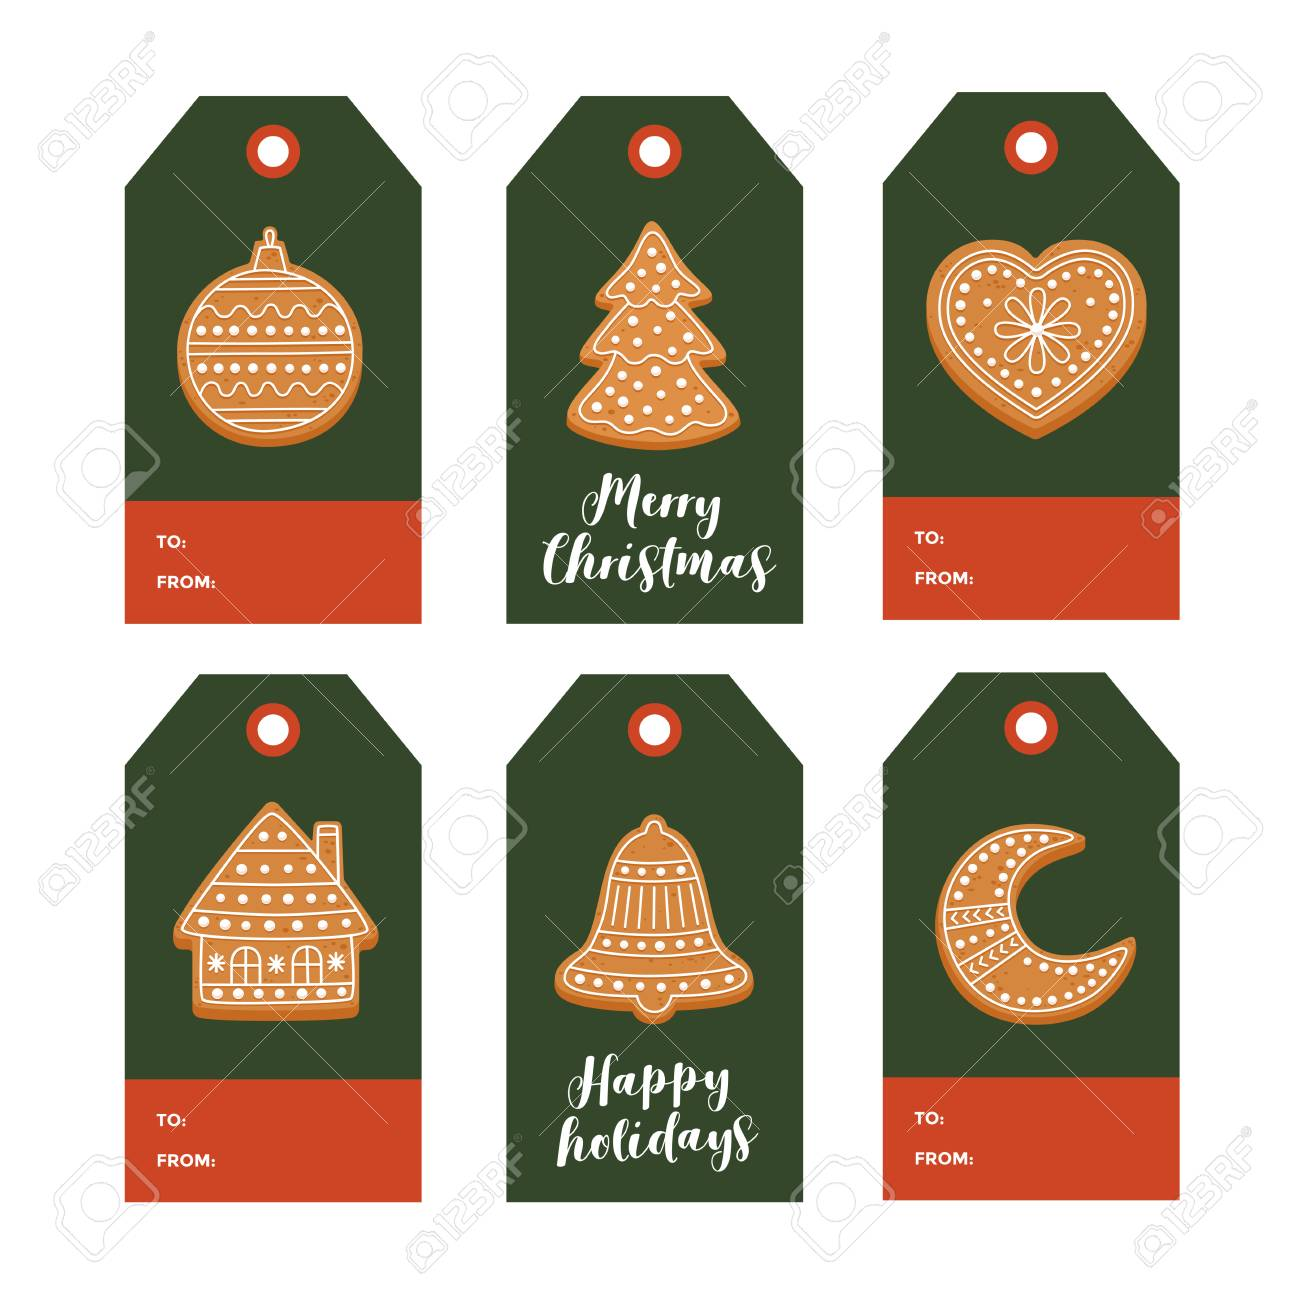 Set Of Christmas Gift Tags With Christmas Gingerbread And Festive Royalty Free Cliparts Vectors And Stock Illustration Image 89366418